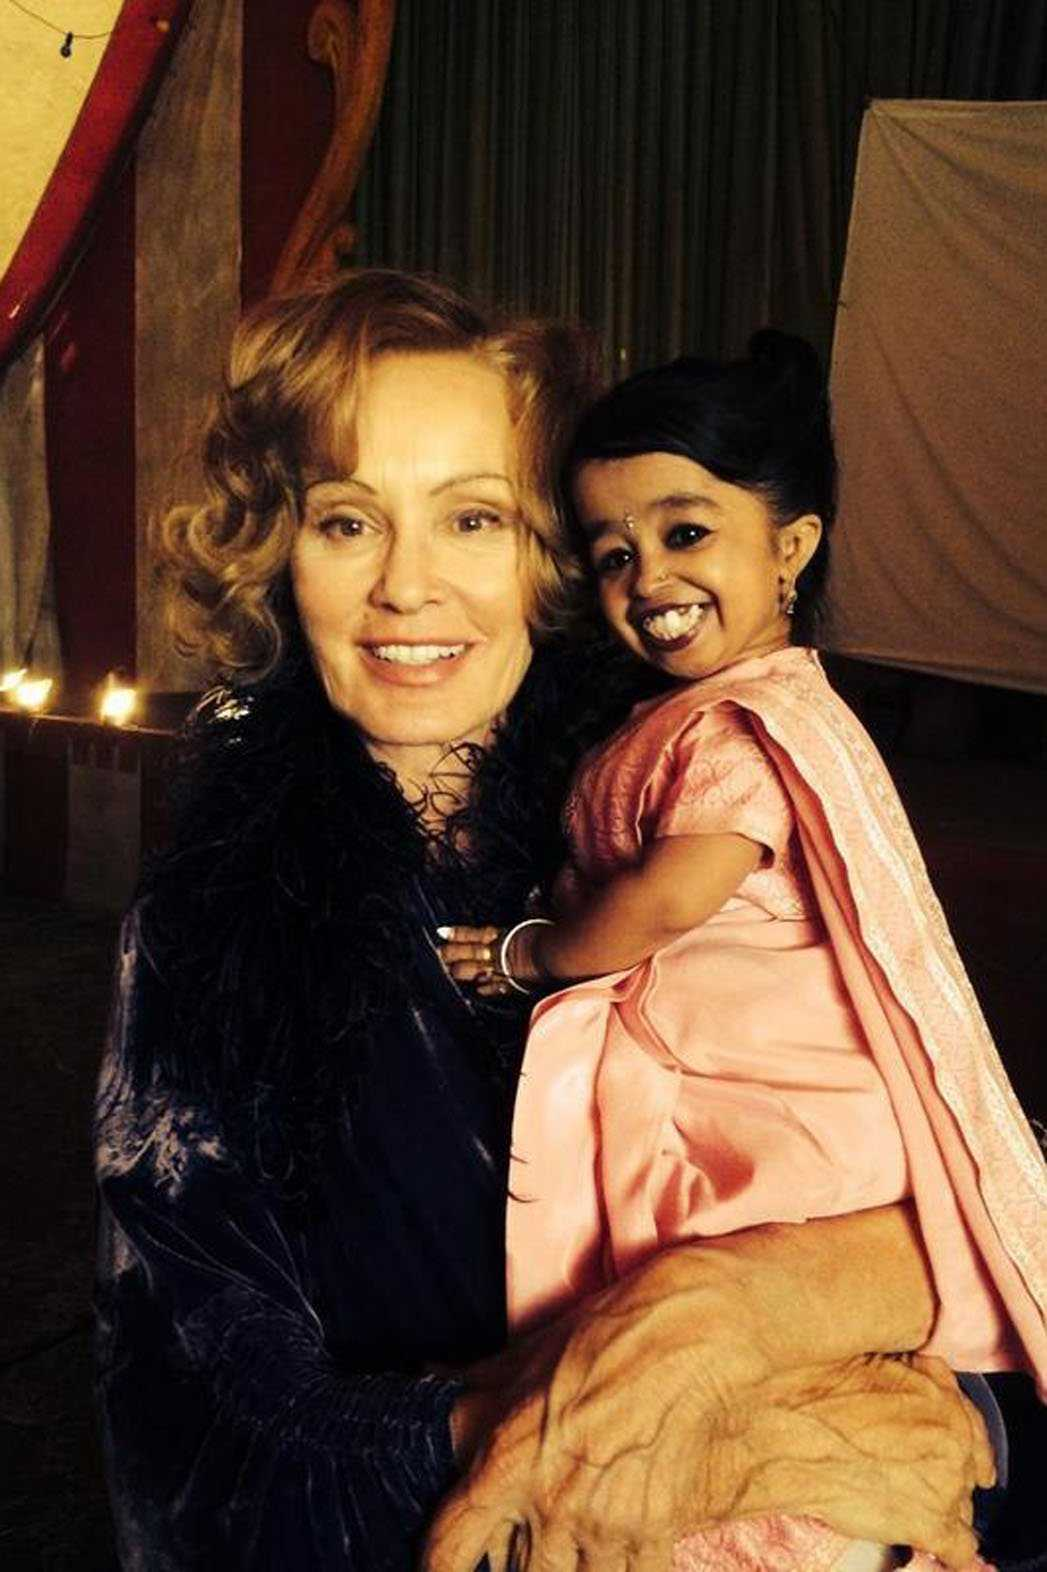 Jyoti Amge, World's Smallest Woman, Joins 'American Horror Story: Freak Show' | Jyoti Amge